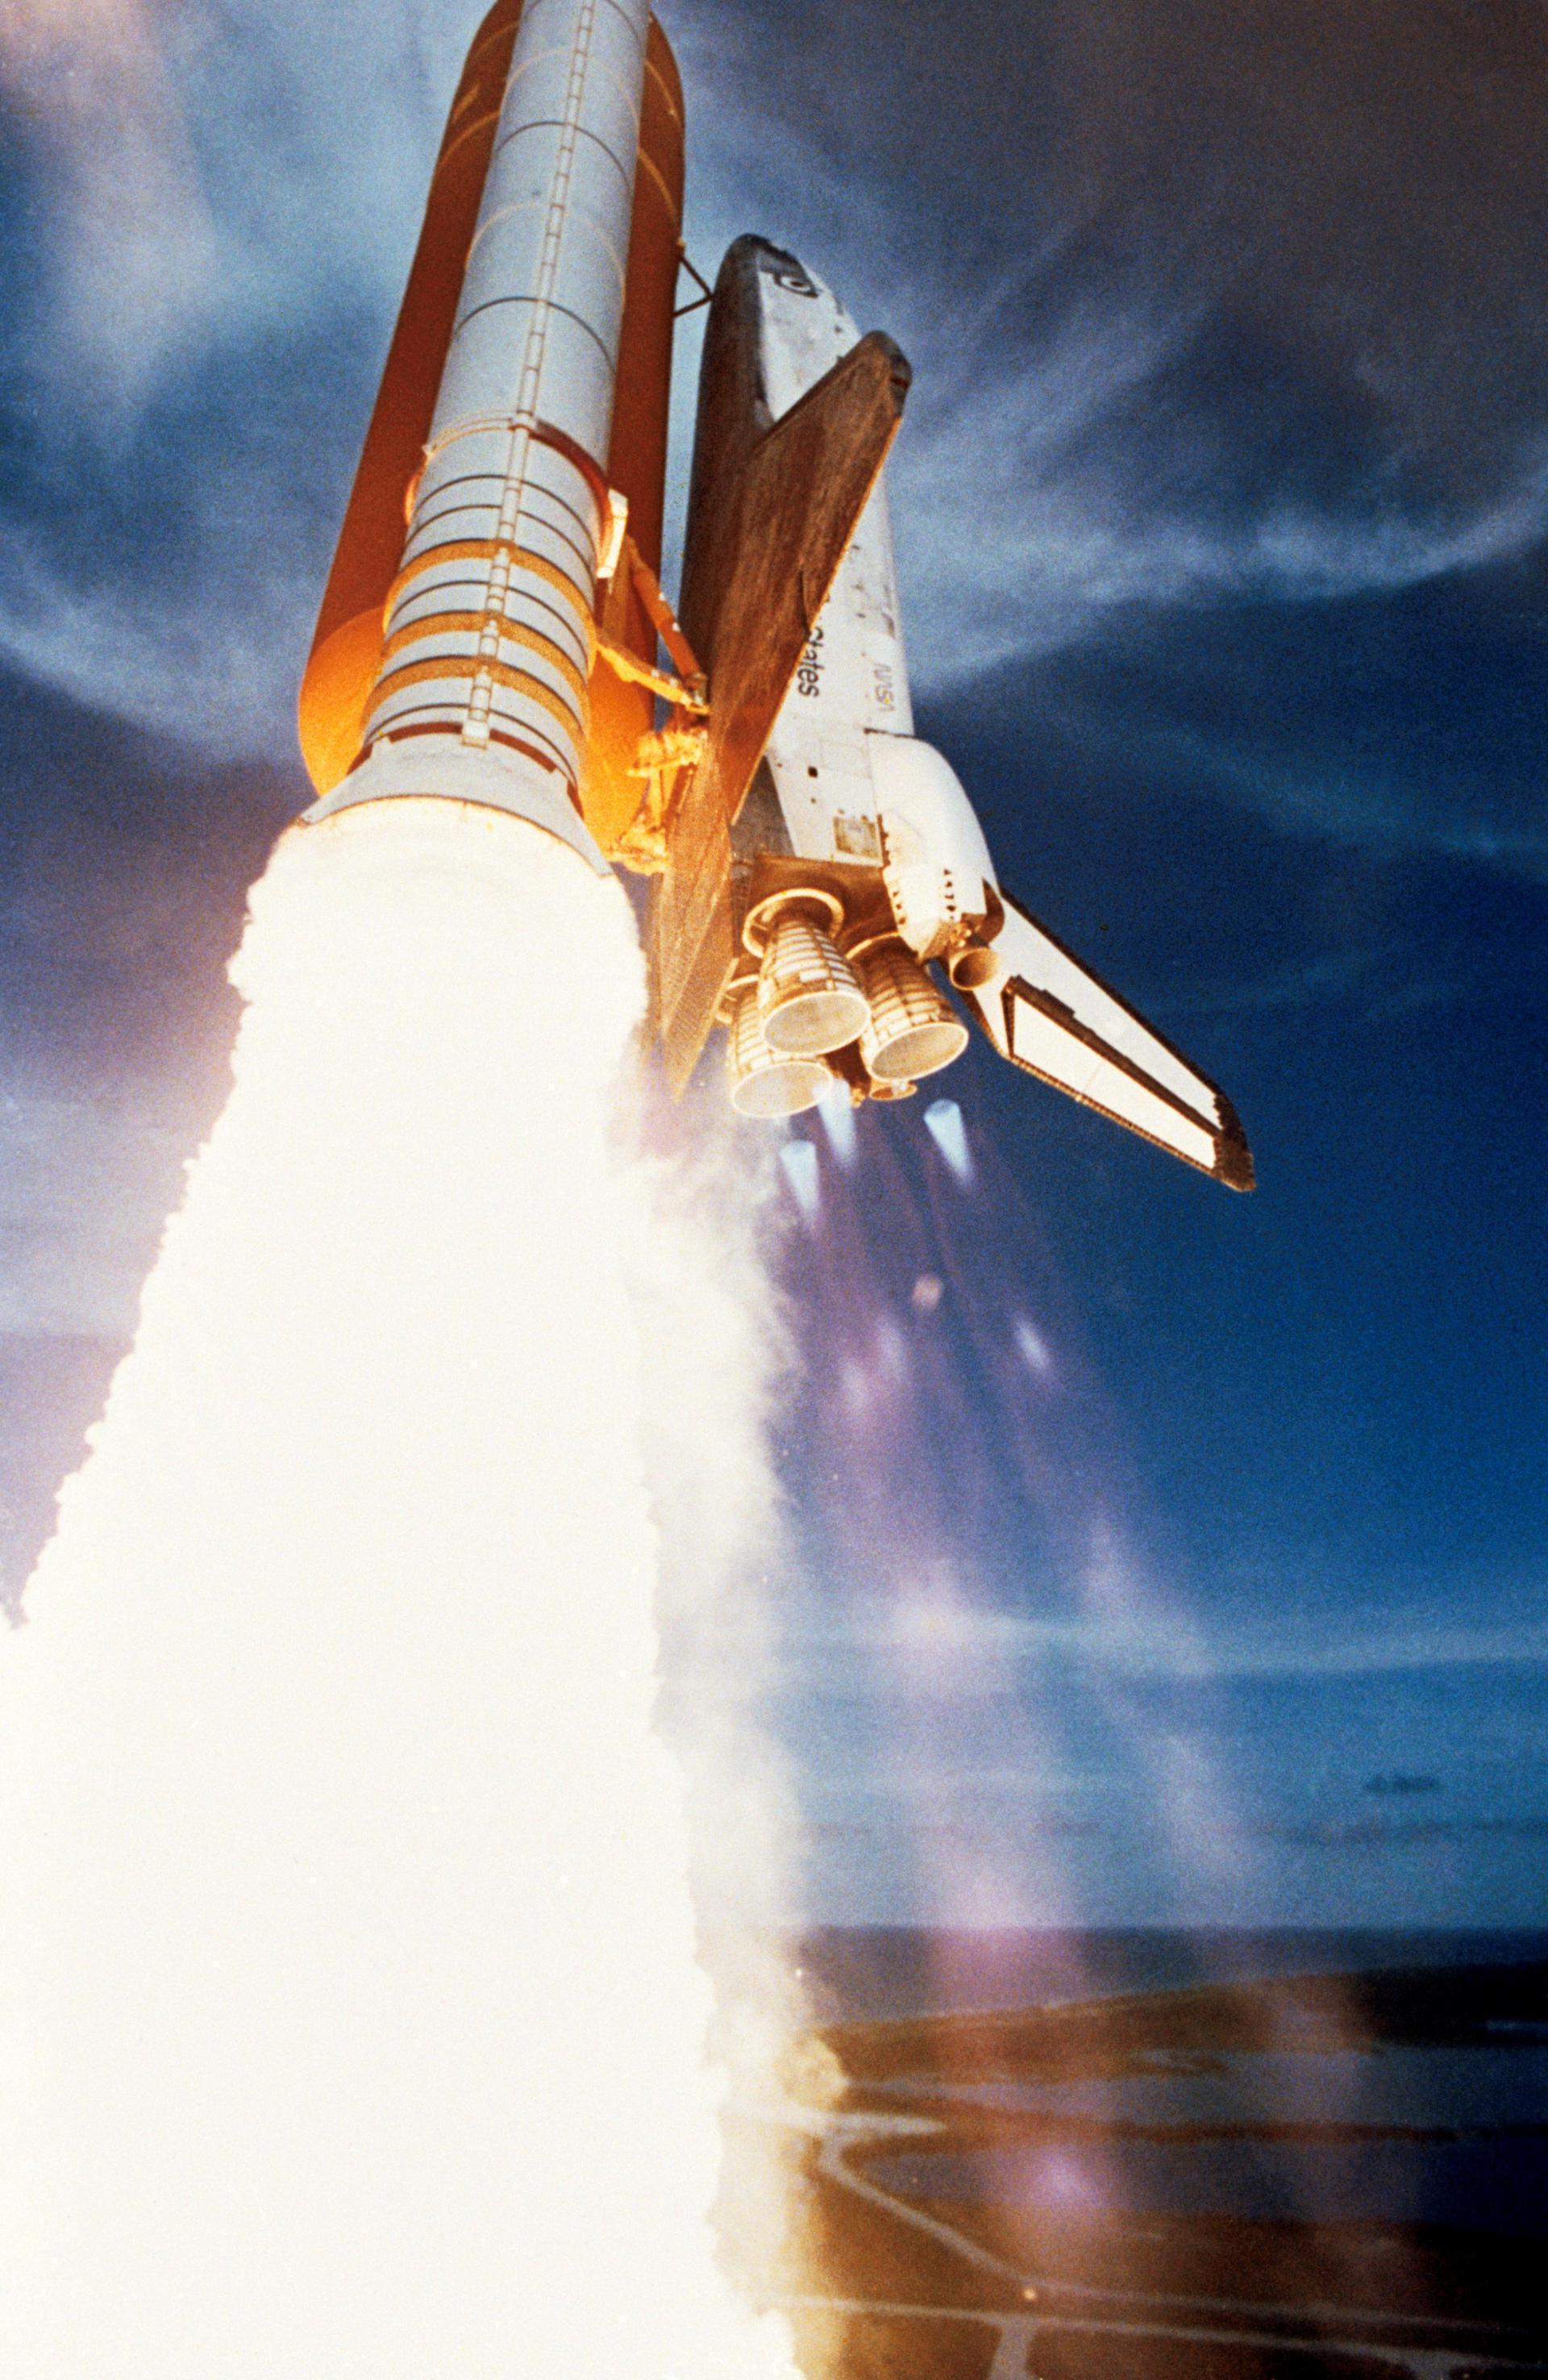 Space Shuttle Challenger / OV-099 | STS-51-F